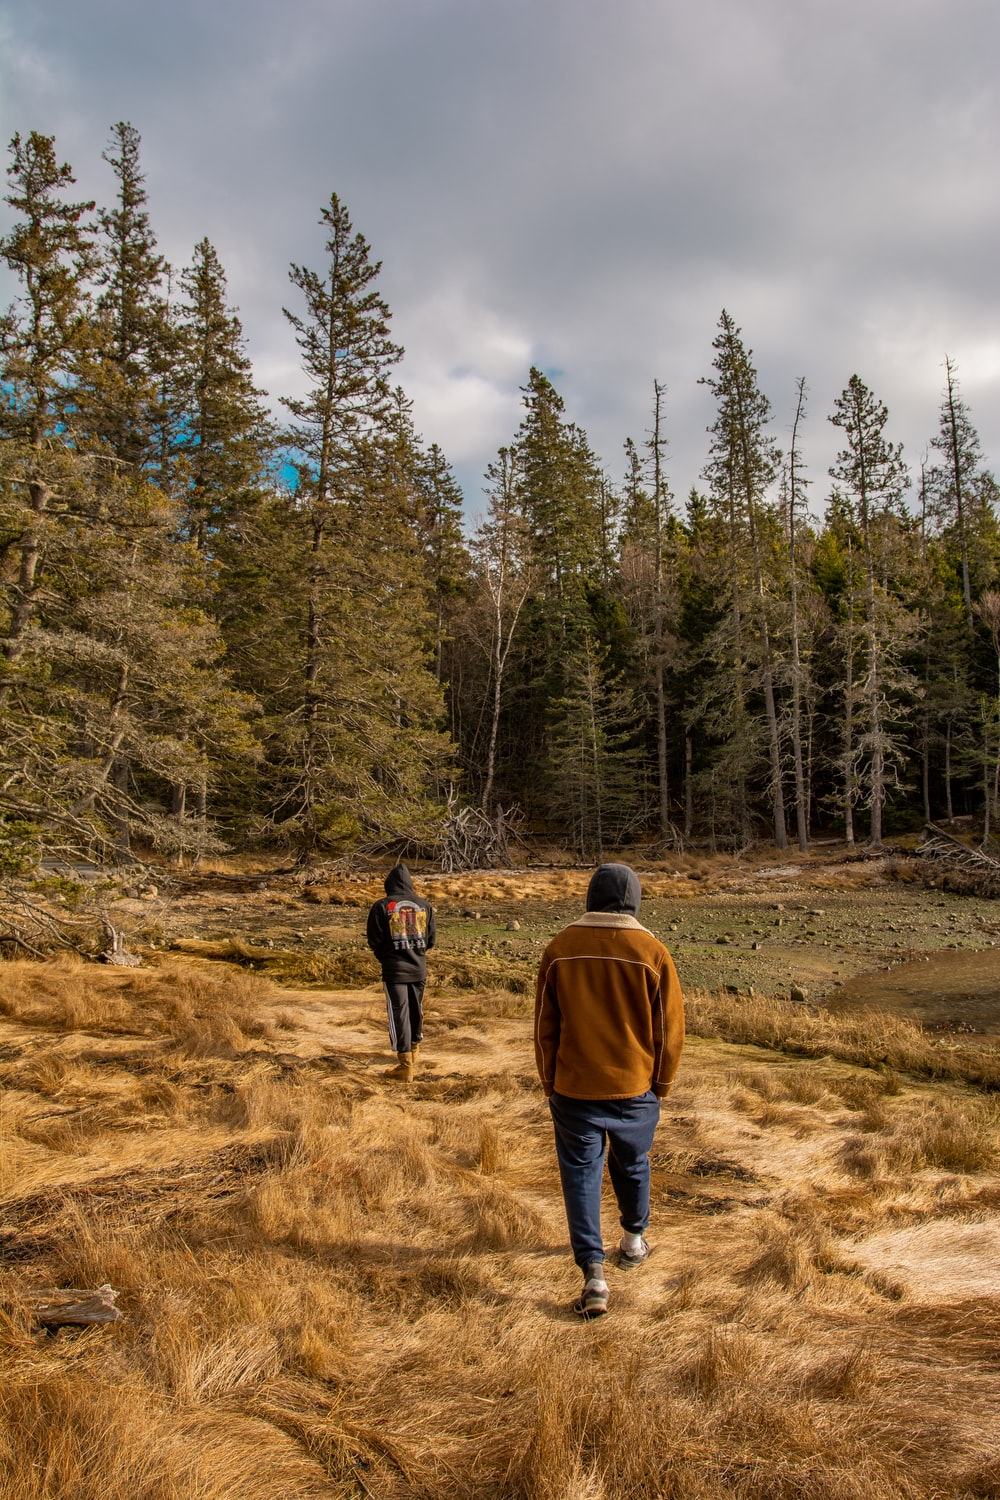 2 person walking on dirt road surrounded by trees during daytime